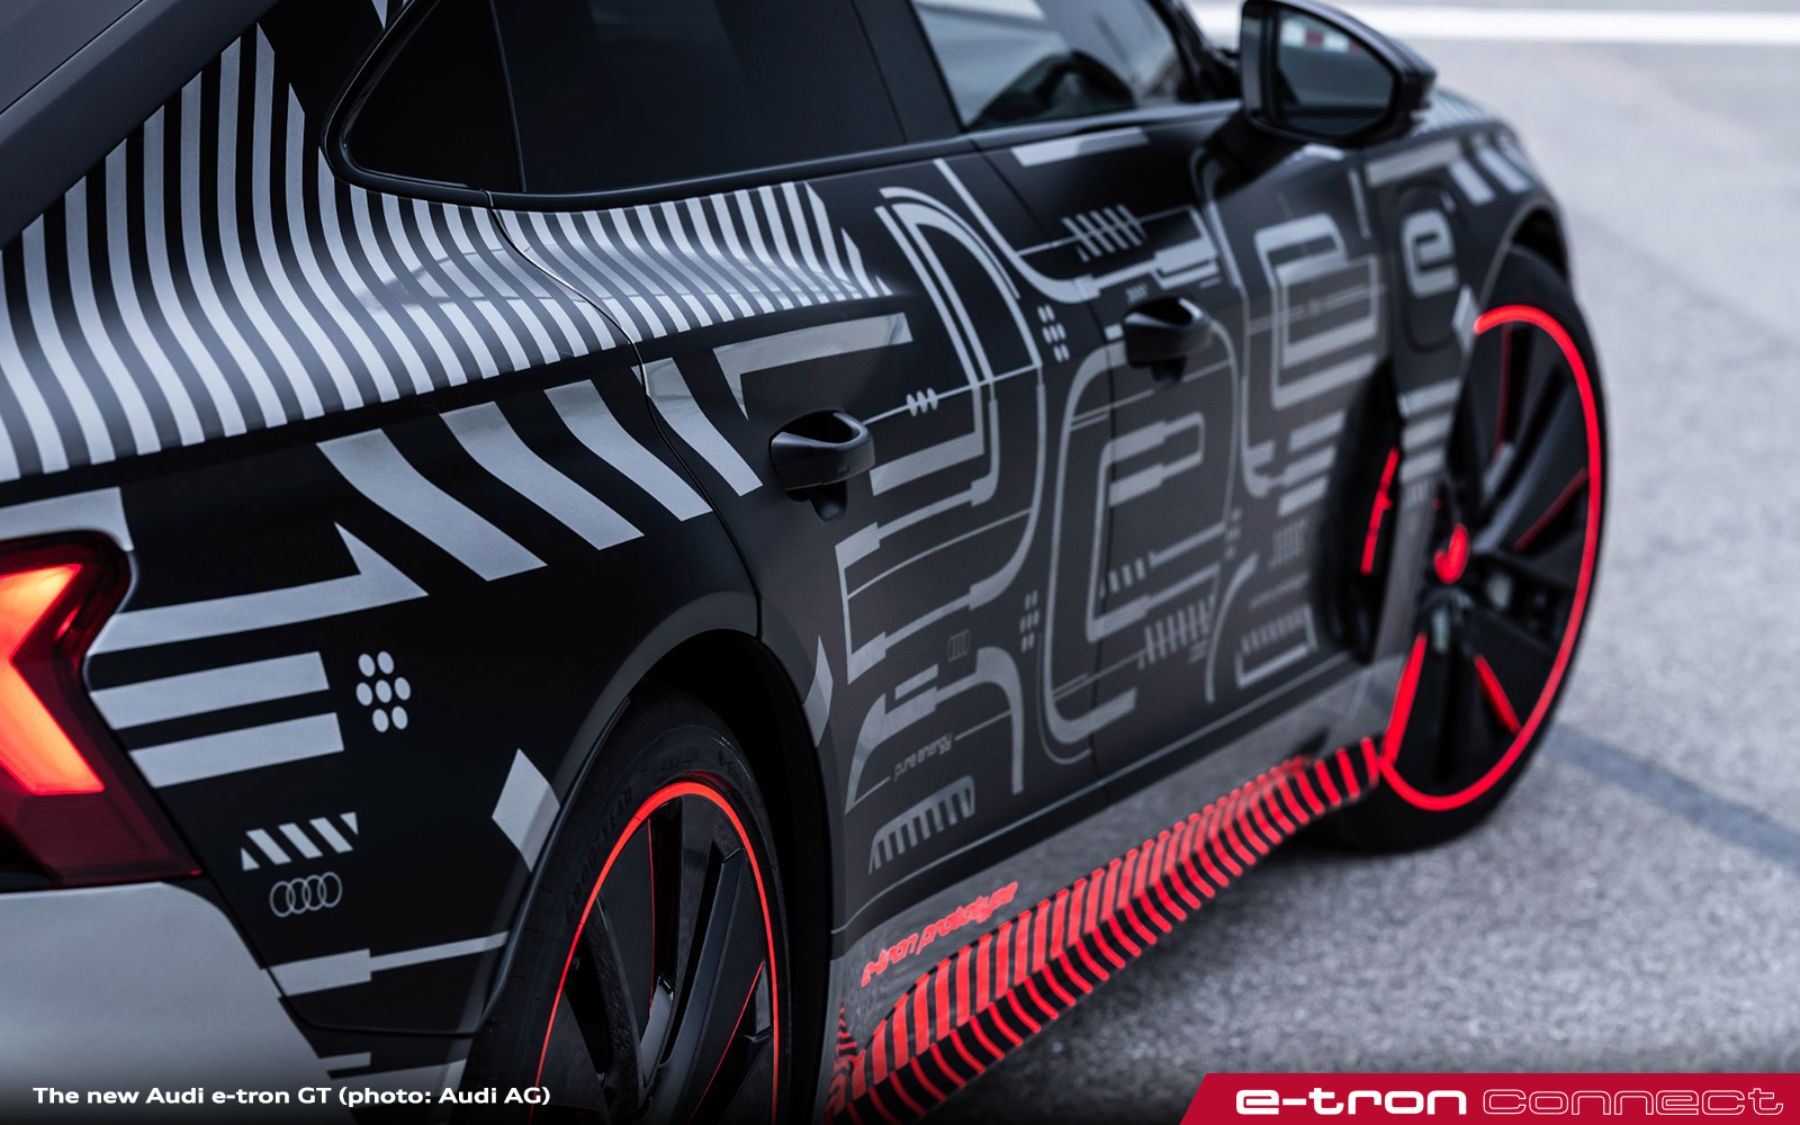 Passion for Quality and Progressiveness: The New Audi e-tron GT